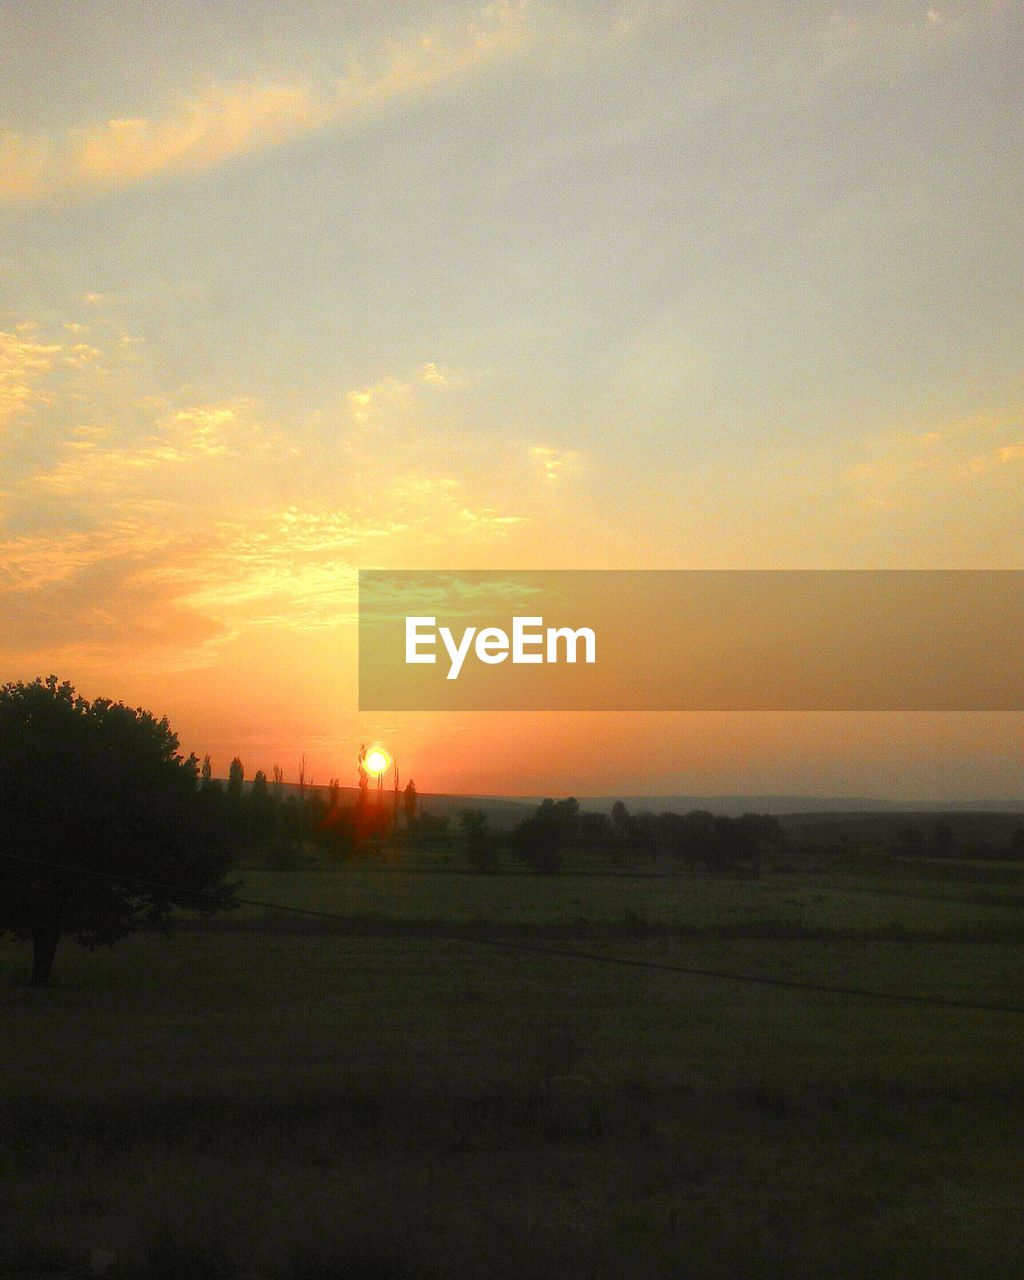 sunset, field, sun, landscape, orange color, nature, beauty in nature, scenics, tranquility, no people, tranquil scene, sky, silhouette, yellow, grass, outdoors, tree